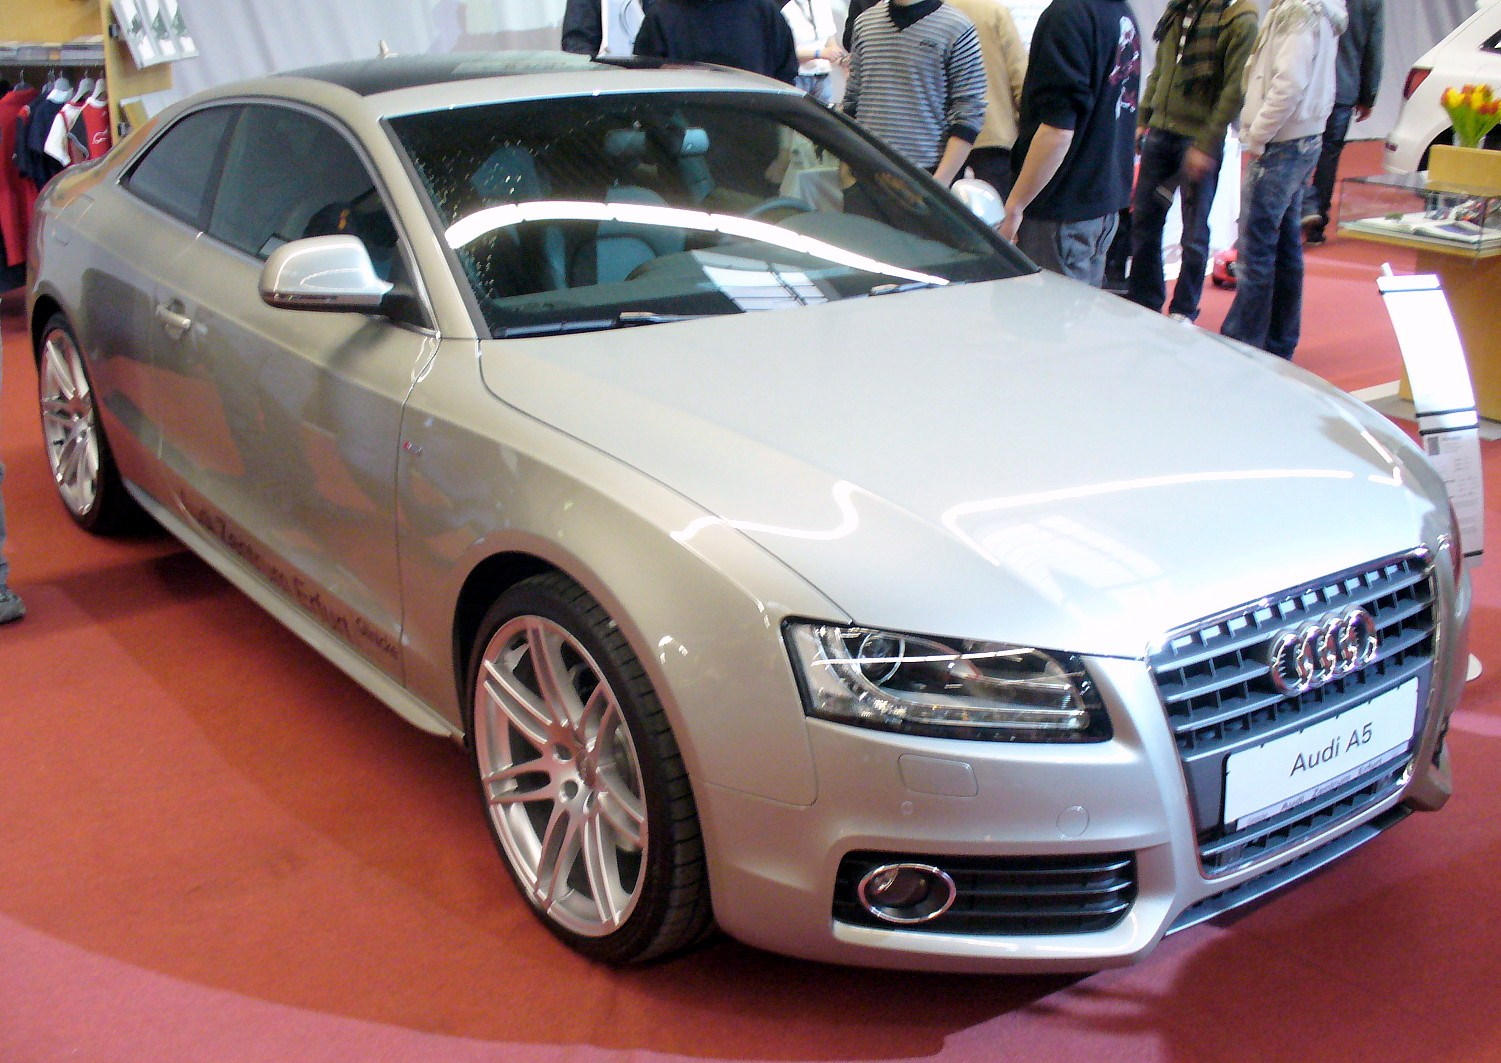 Fileaudi A5 Coupé 27 Tdi S Linejpg Wikimedia Commons